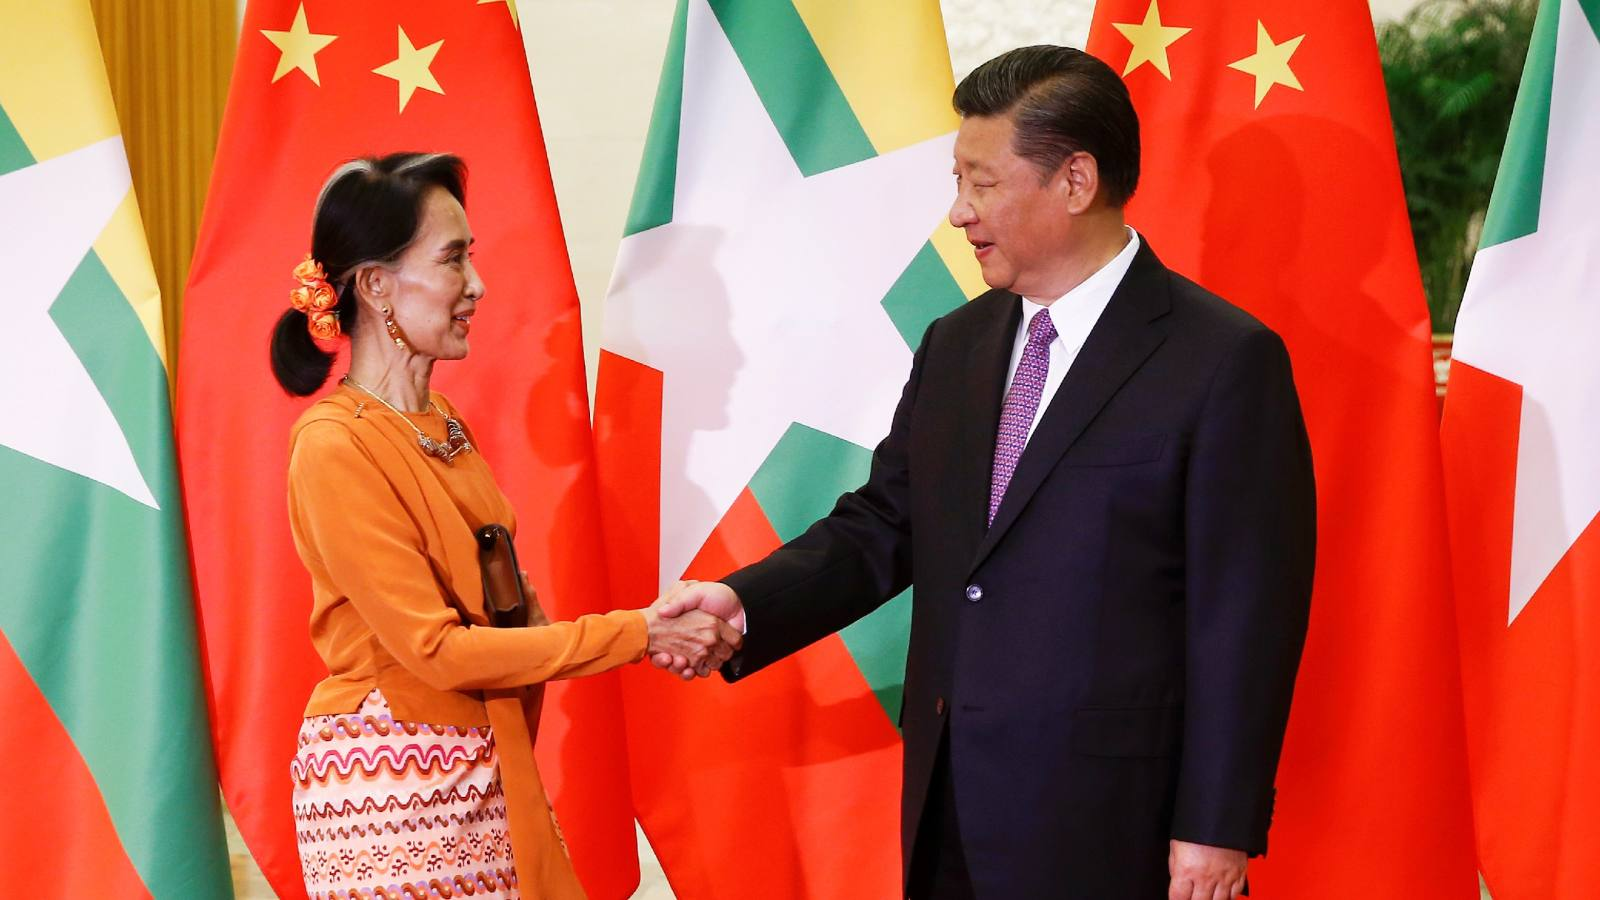 Myanmar's de facto leader Aung San Suu Kyi, left, met with Chinese President Xi Jinping last year. Suu Kyi has visited China three times since assuming leadership.